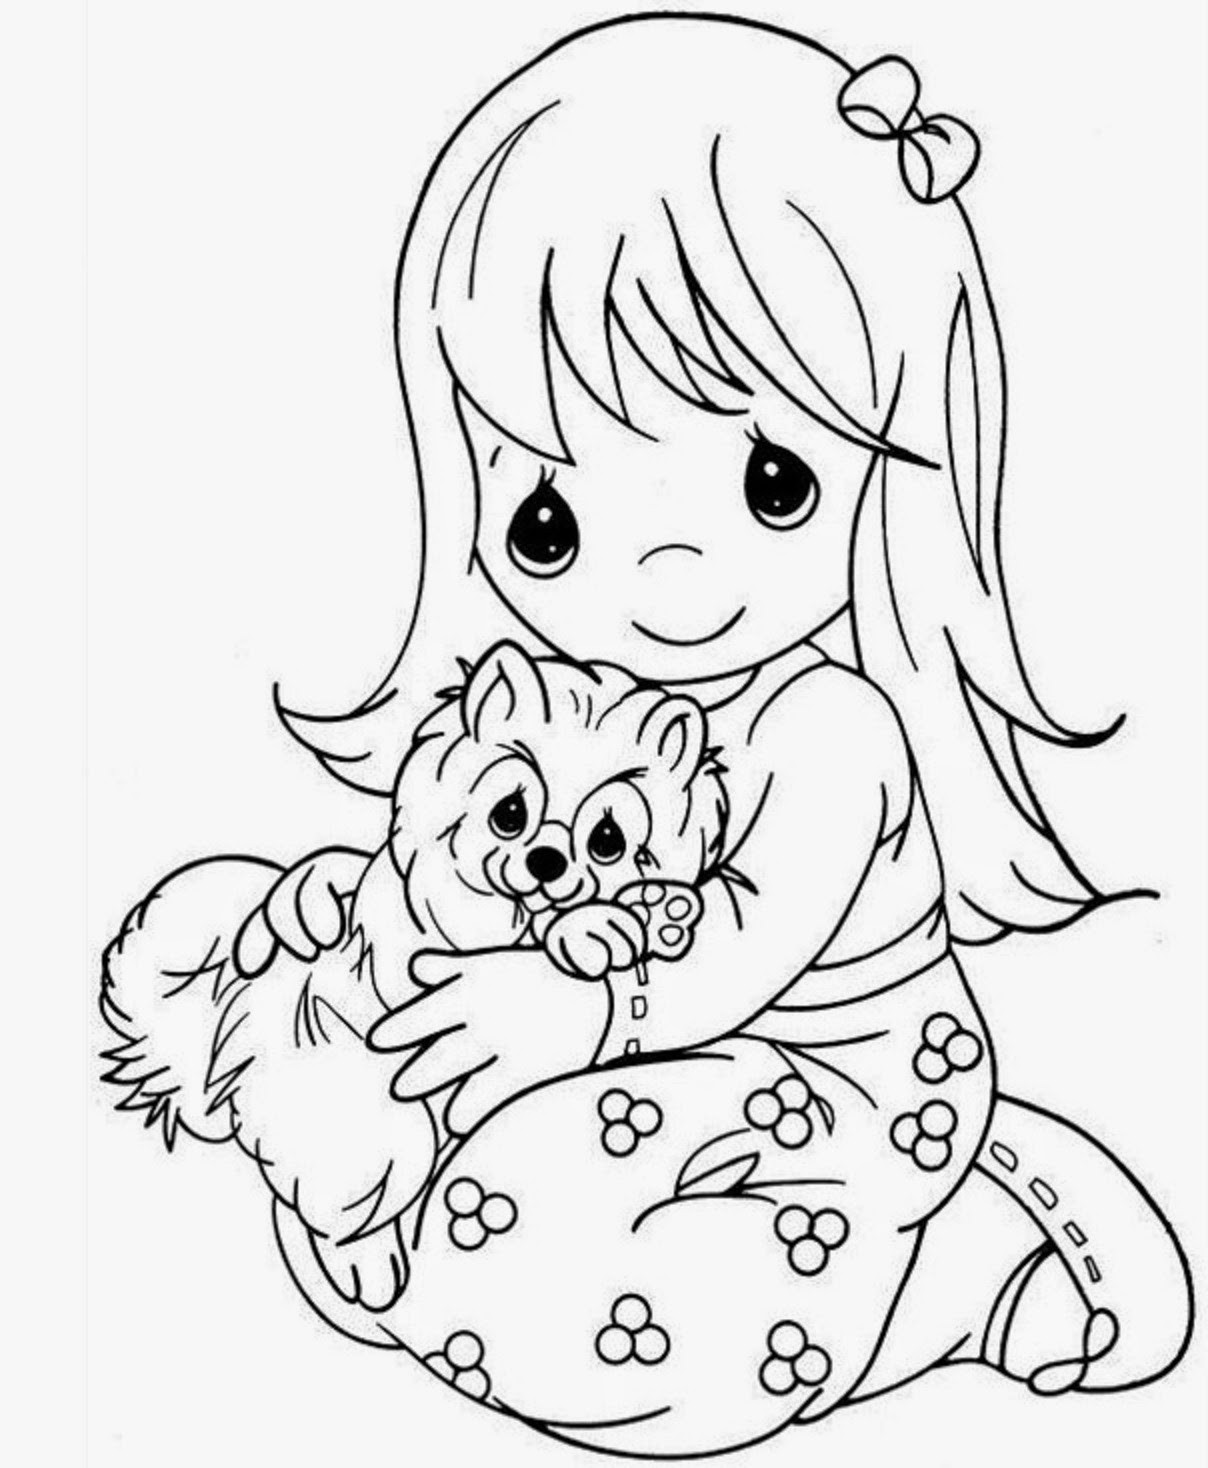 Girl Cartoon Coloring Pages  colours drawing wallpaper Beautiful Precious Moments Girl